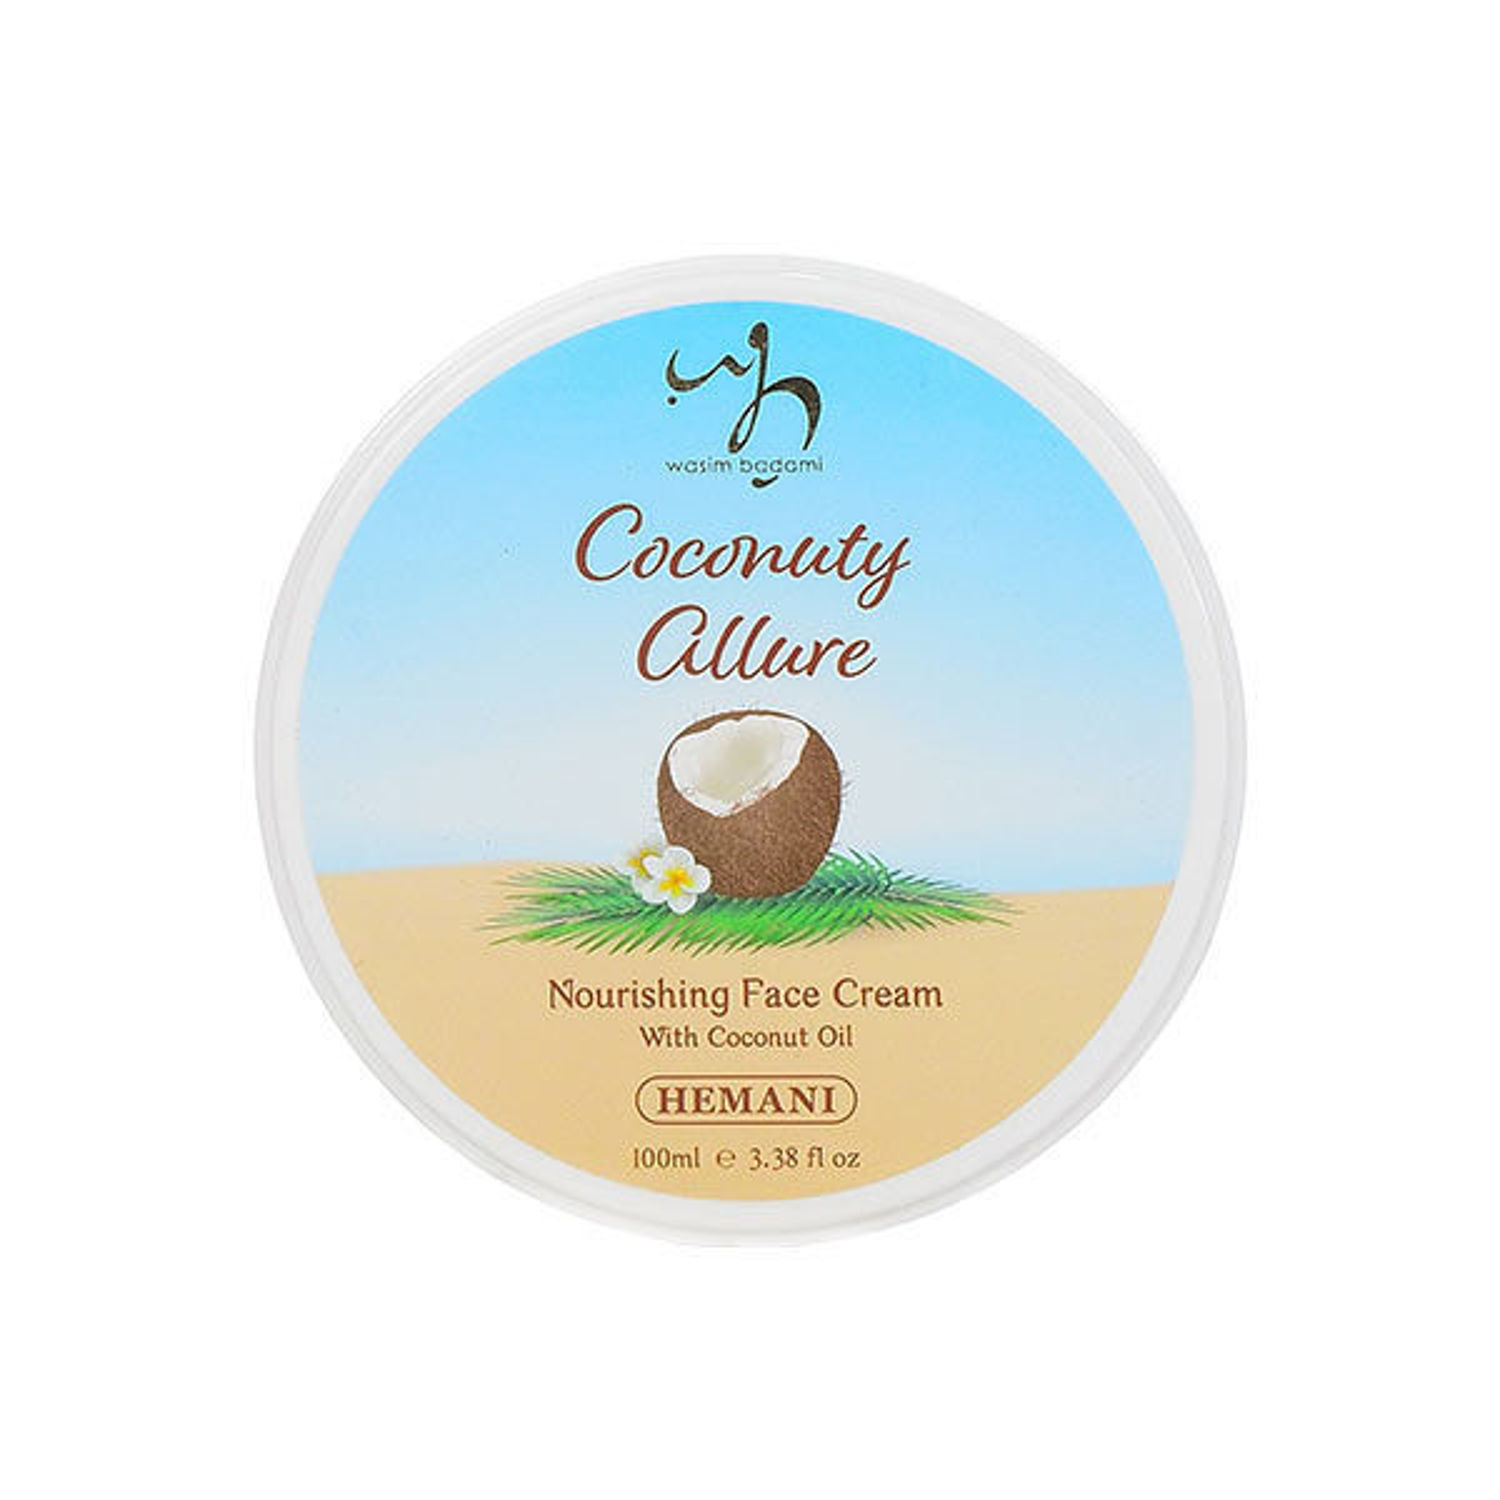 WB by Hemani Coconuty Allure Face Cream